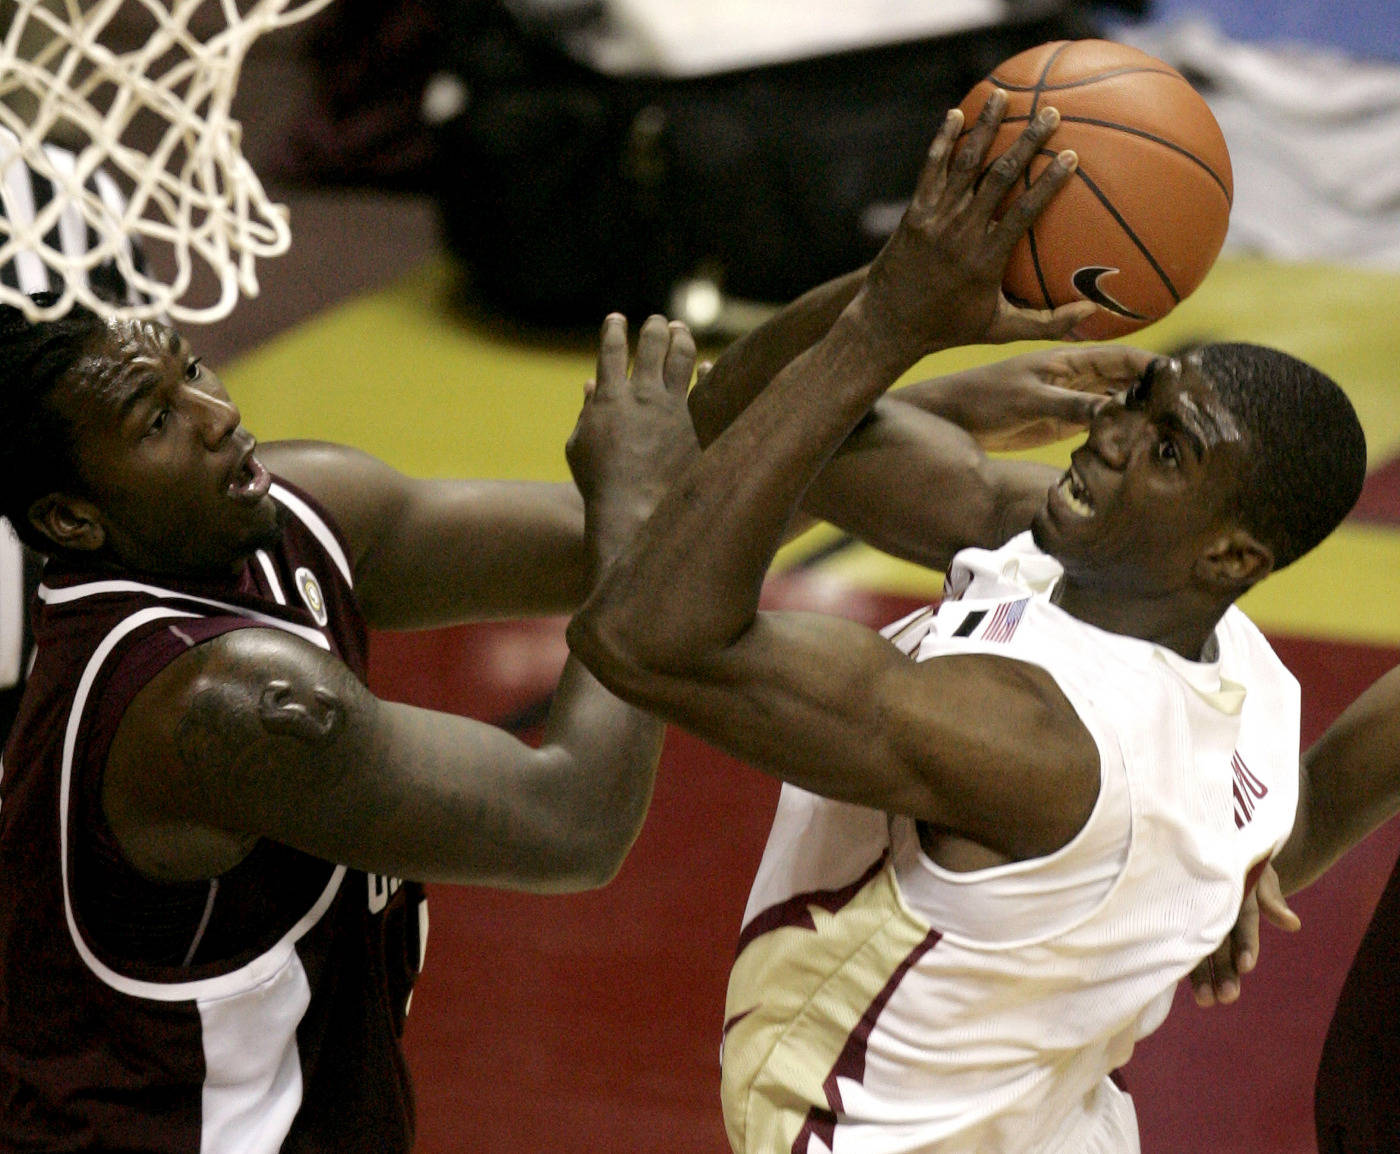 Uche Echefu attempts a first-half shot as College of Charleston's Jermaine Johnson defends in Tallahassee, Fla.(AP Photo/Phil Coale)